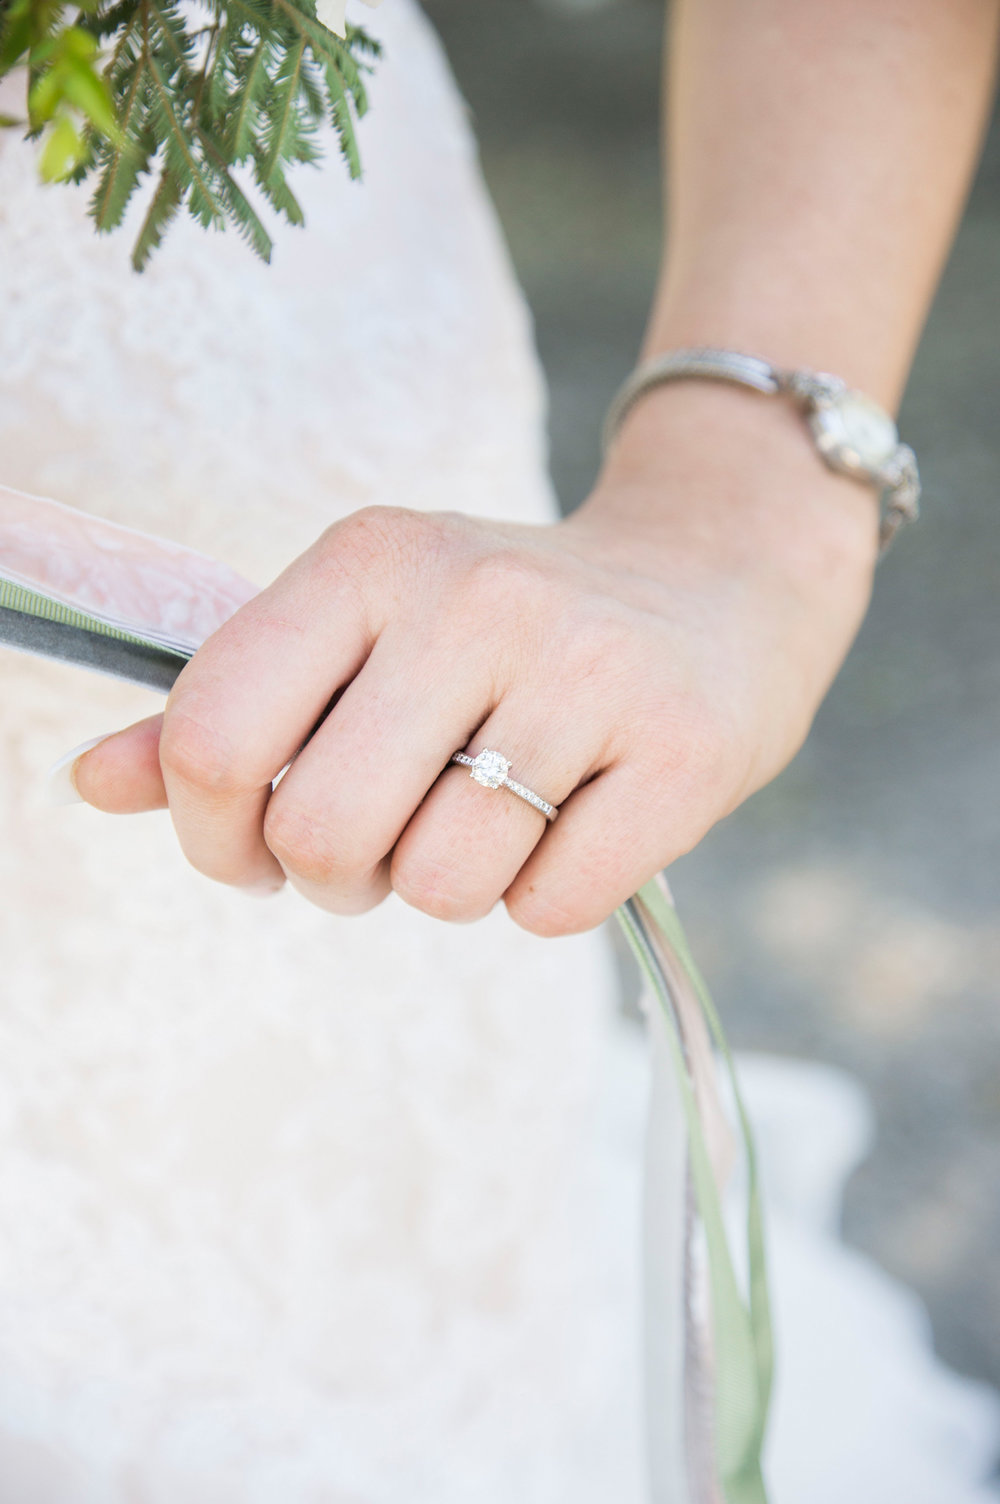 Solitaire Engagement Ring - A McCoy Equestrian Center Wedding - Peterson Design & Photography